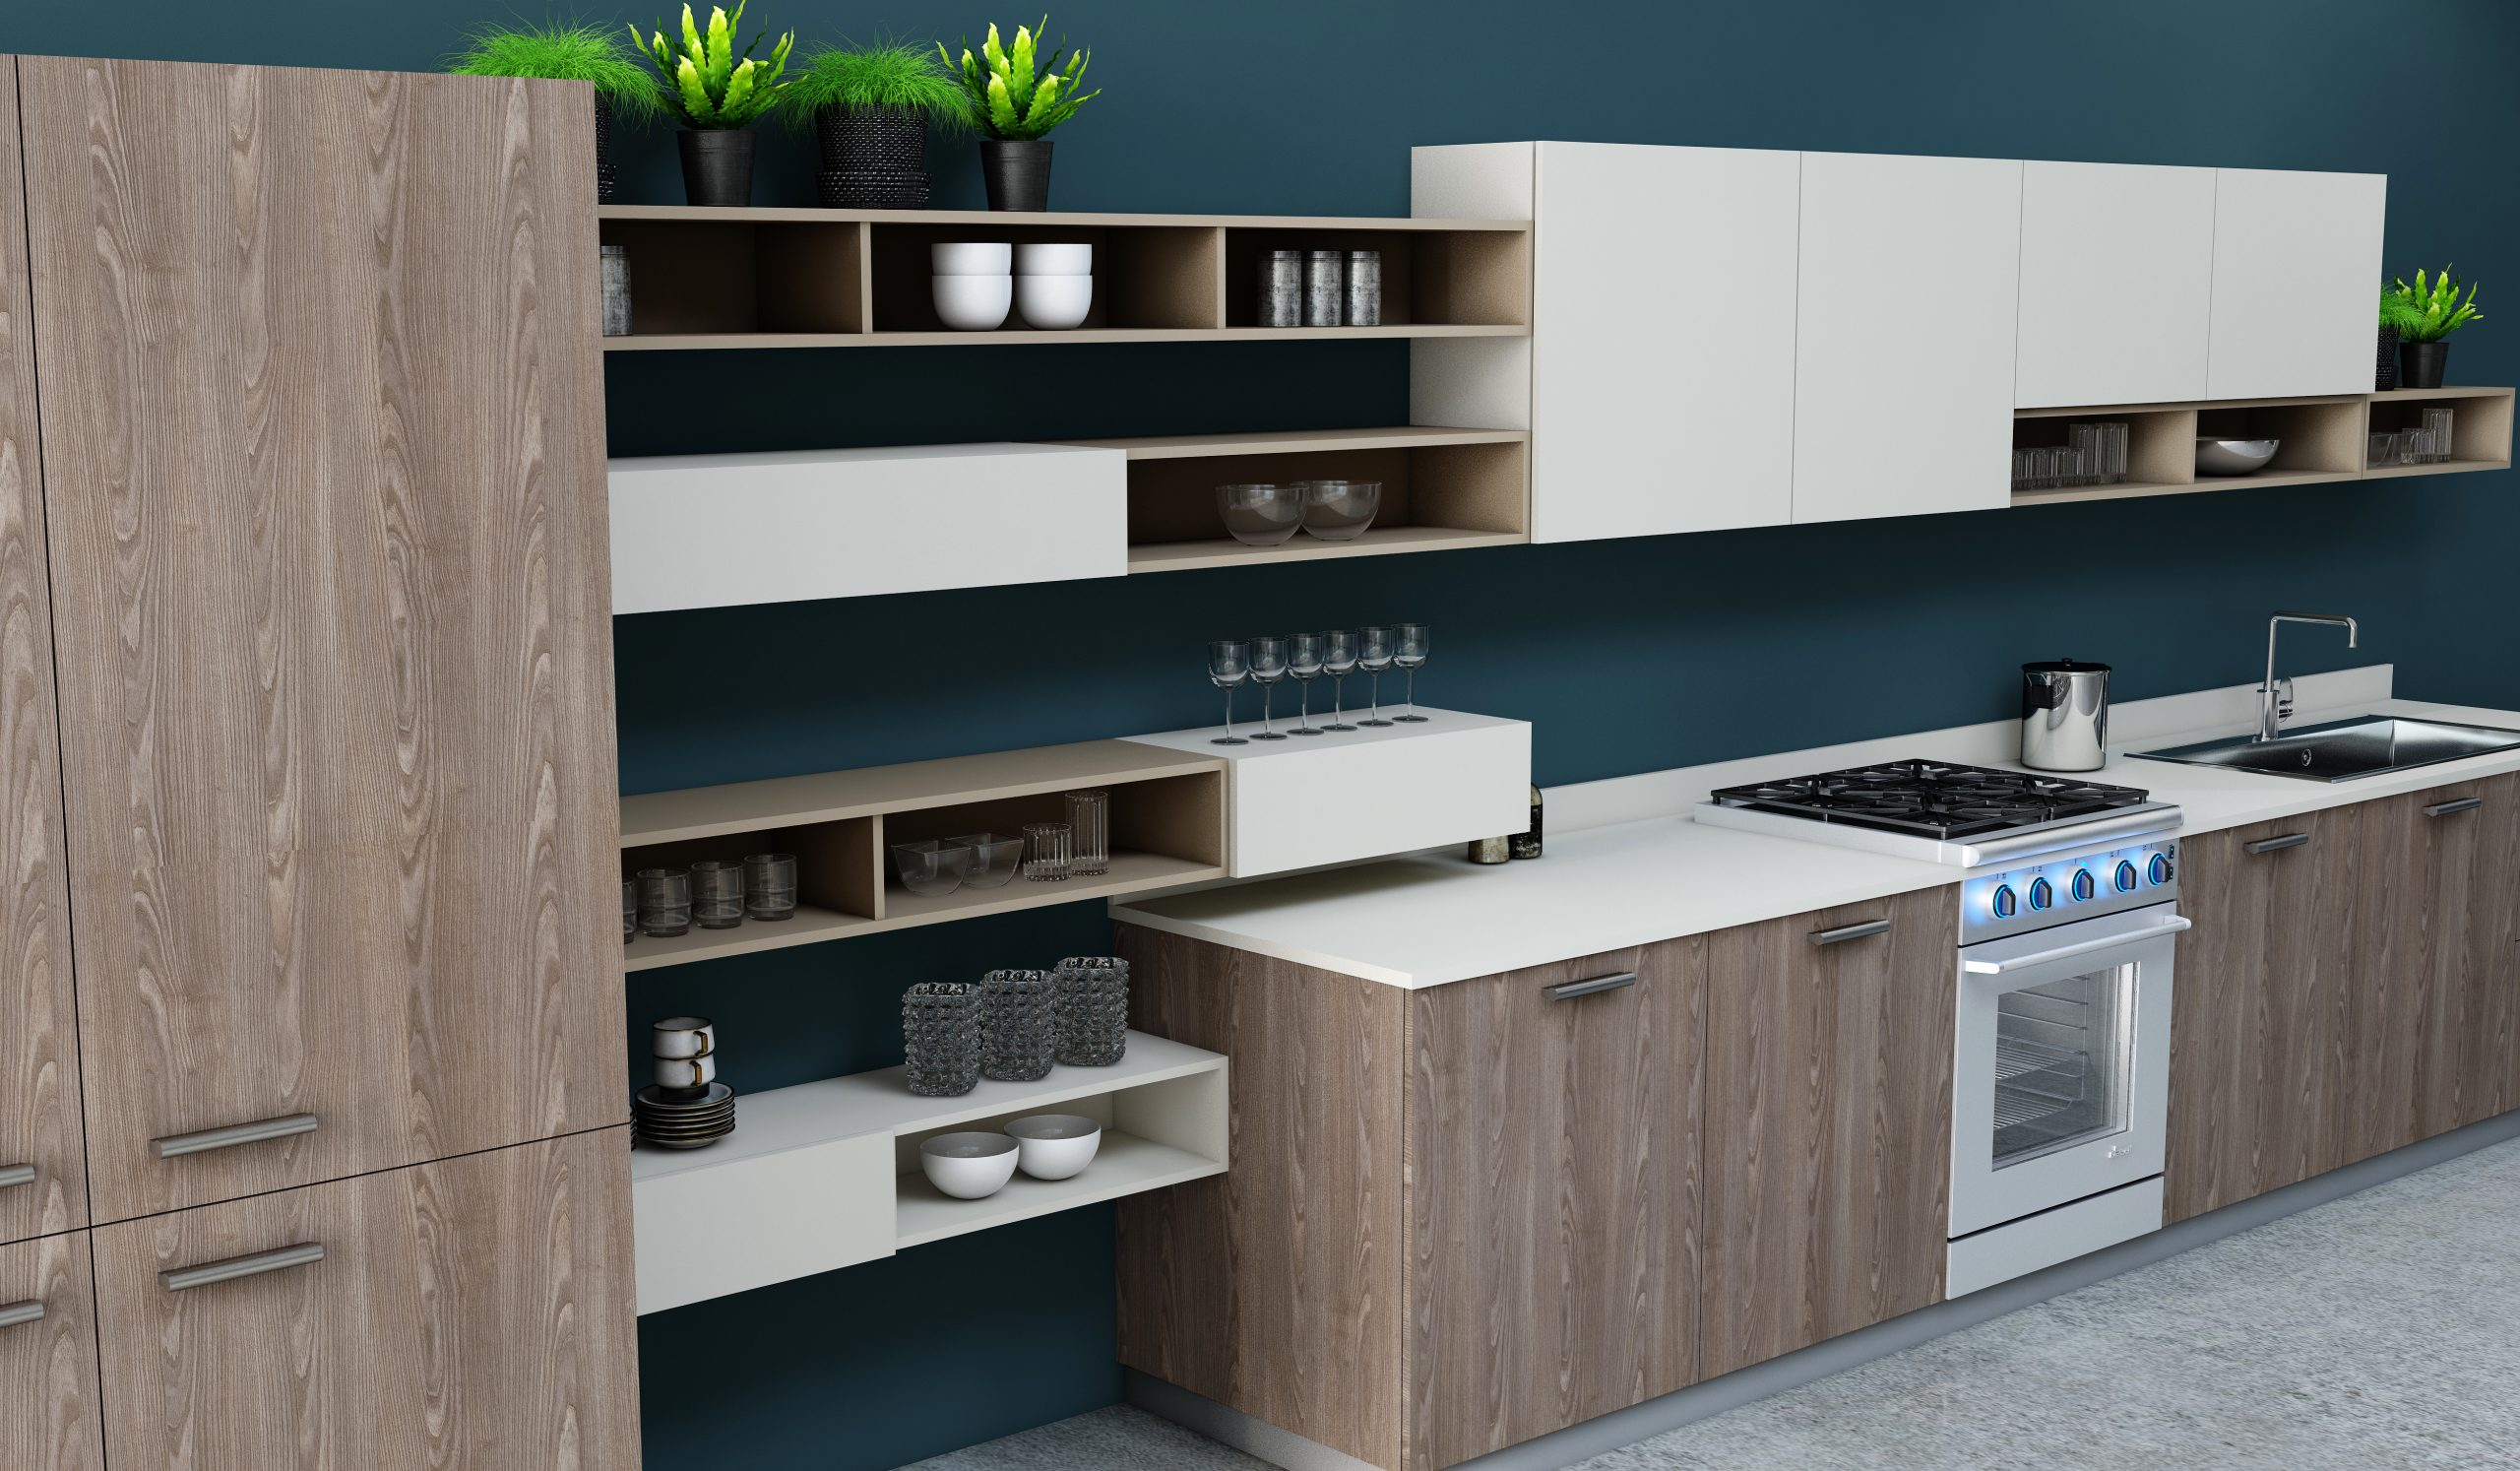 Easyline Fitted Small Kitchen with Alcove in Brown Orleans Oak woodgrain & Cream Matt Finish